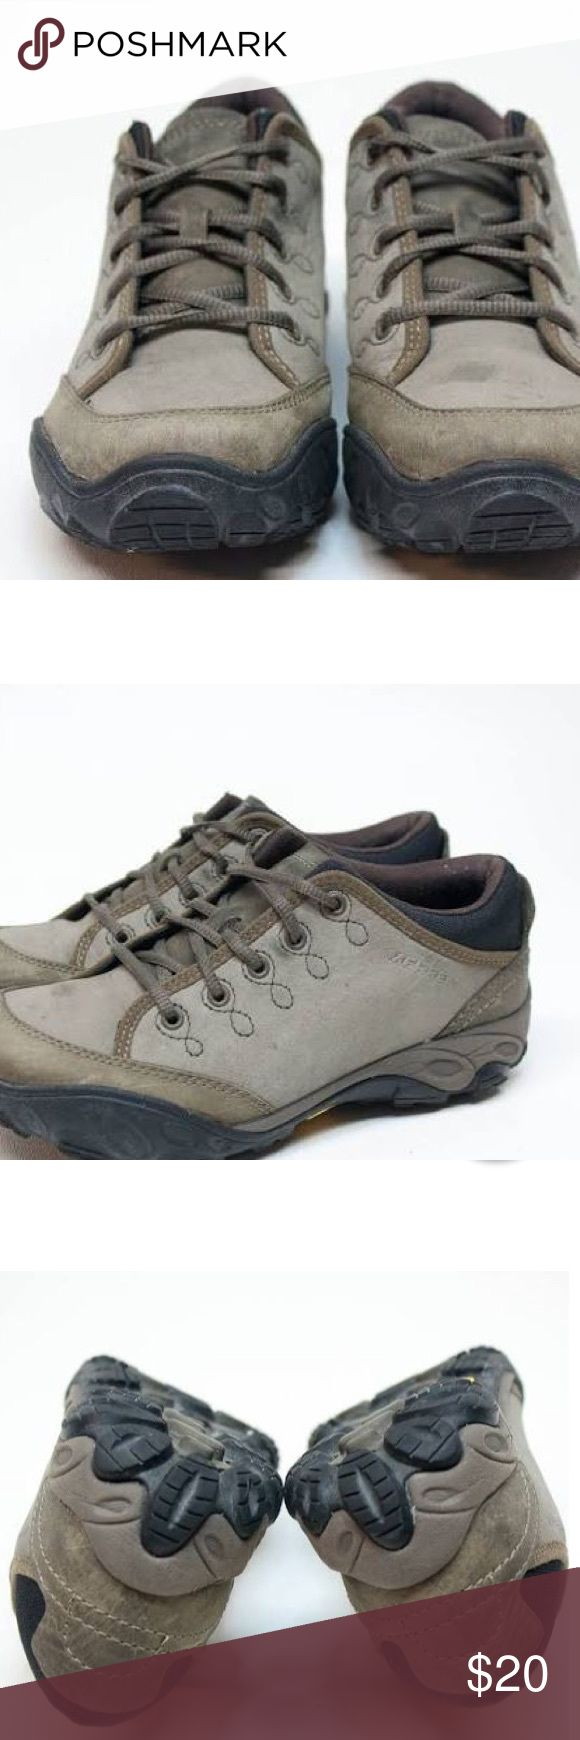 Merrell quartz brindle grey hiking shoe size 9 Worn but not worn out. Great used condition Hiking boot technology and casual shoe comfort are fused together to create the Merrill Quartz shoes. A superb choice for travel, they make traversing from city roads to backroads easy and enjoyable. Nubuck leather uppers with artisan stitching are flexible and attractive Recycled polyester mesh  Vibram® Pelorus outsoles feature TC5+ rubber for superior traction and durability on wet and dry surfaces…